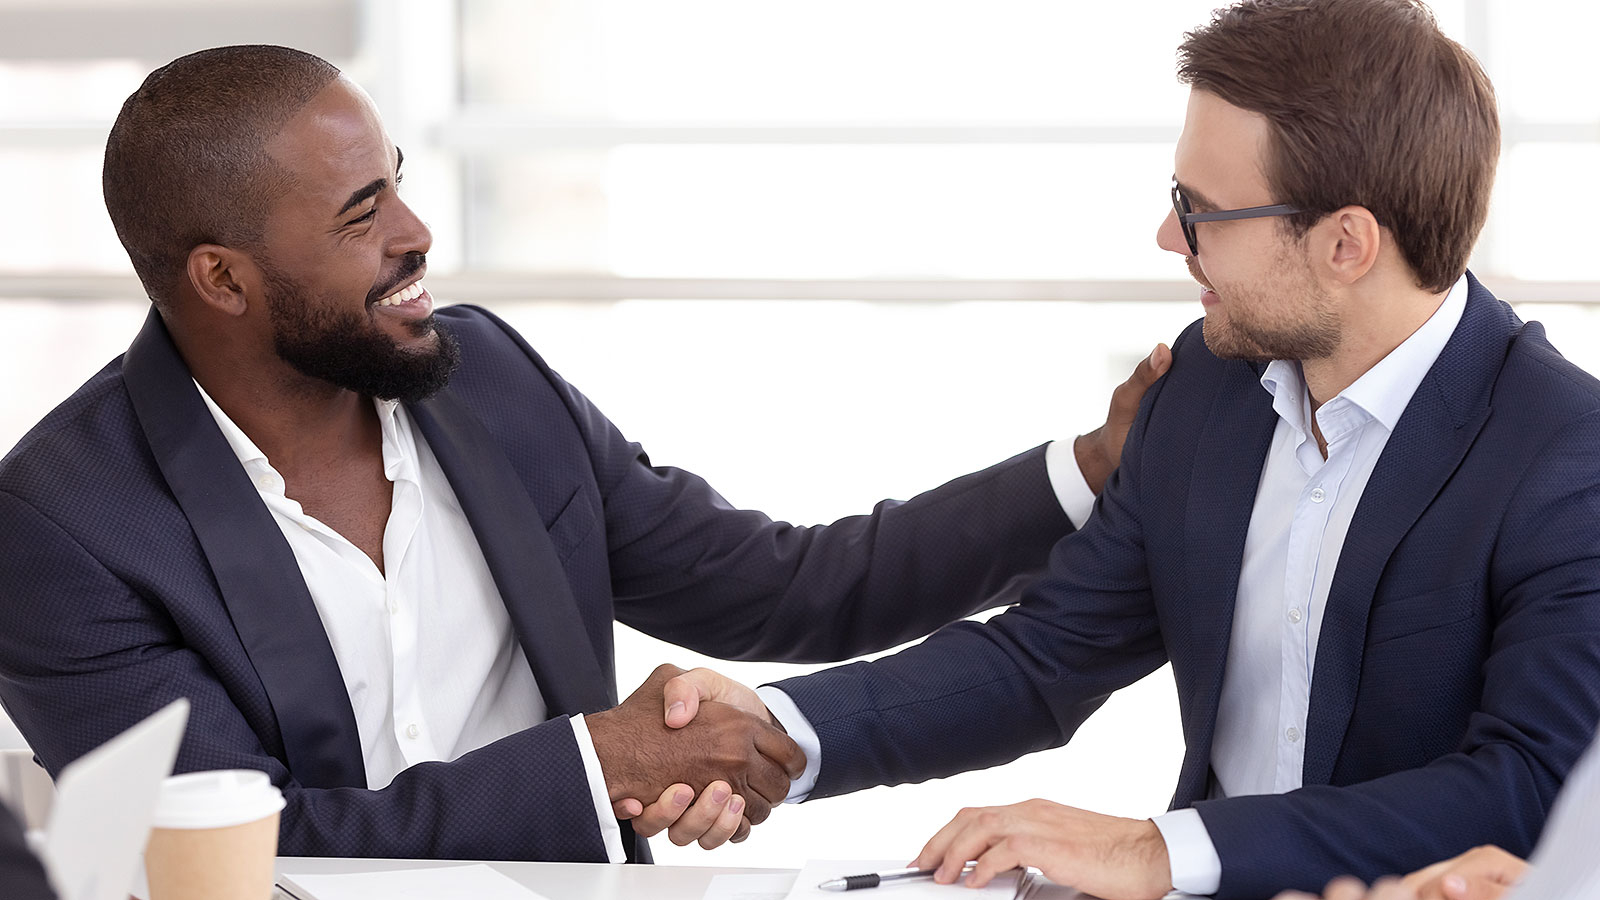 New study reveals the exact length of a perfect handshake